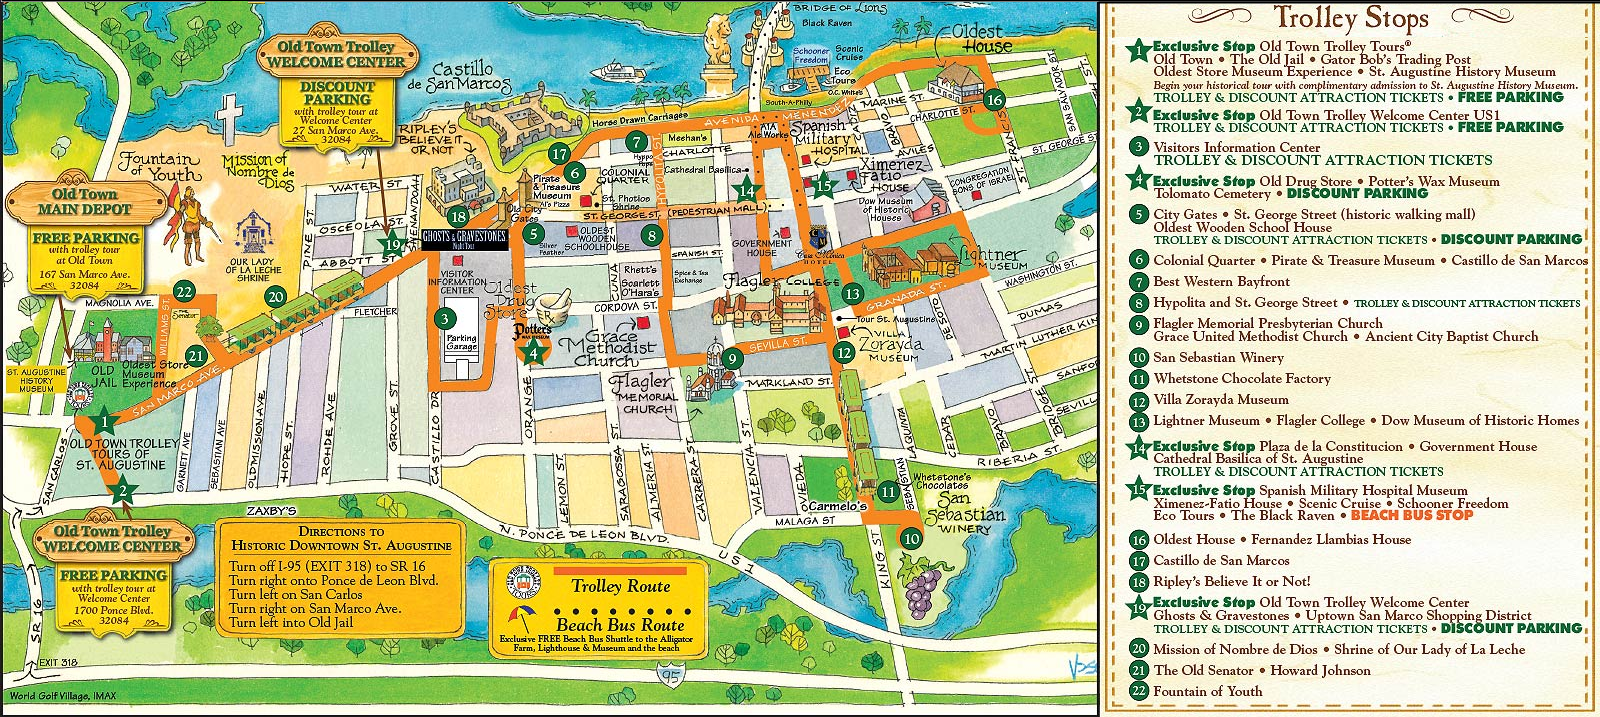 1Day St Augustine Old Town Trolley Tour – St Augustine Tourist Attractions Map